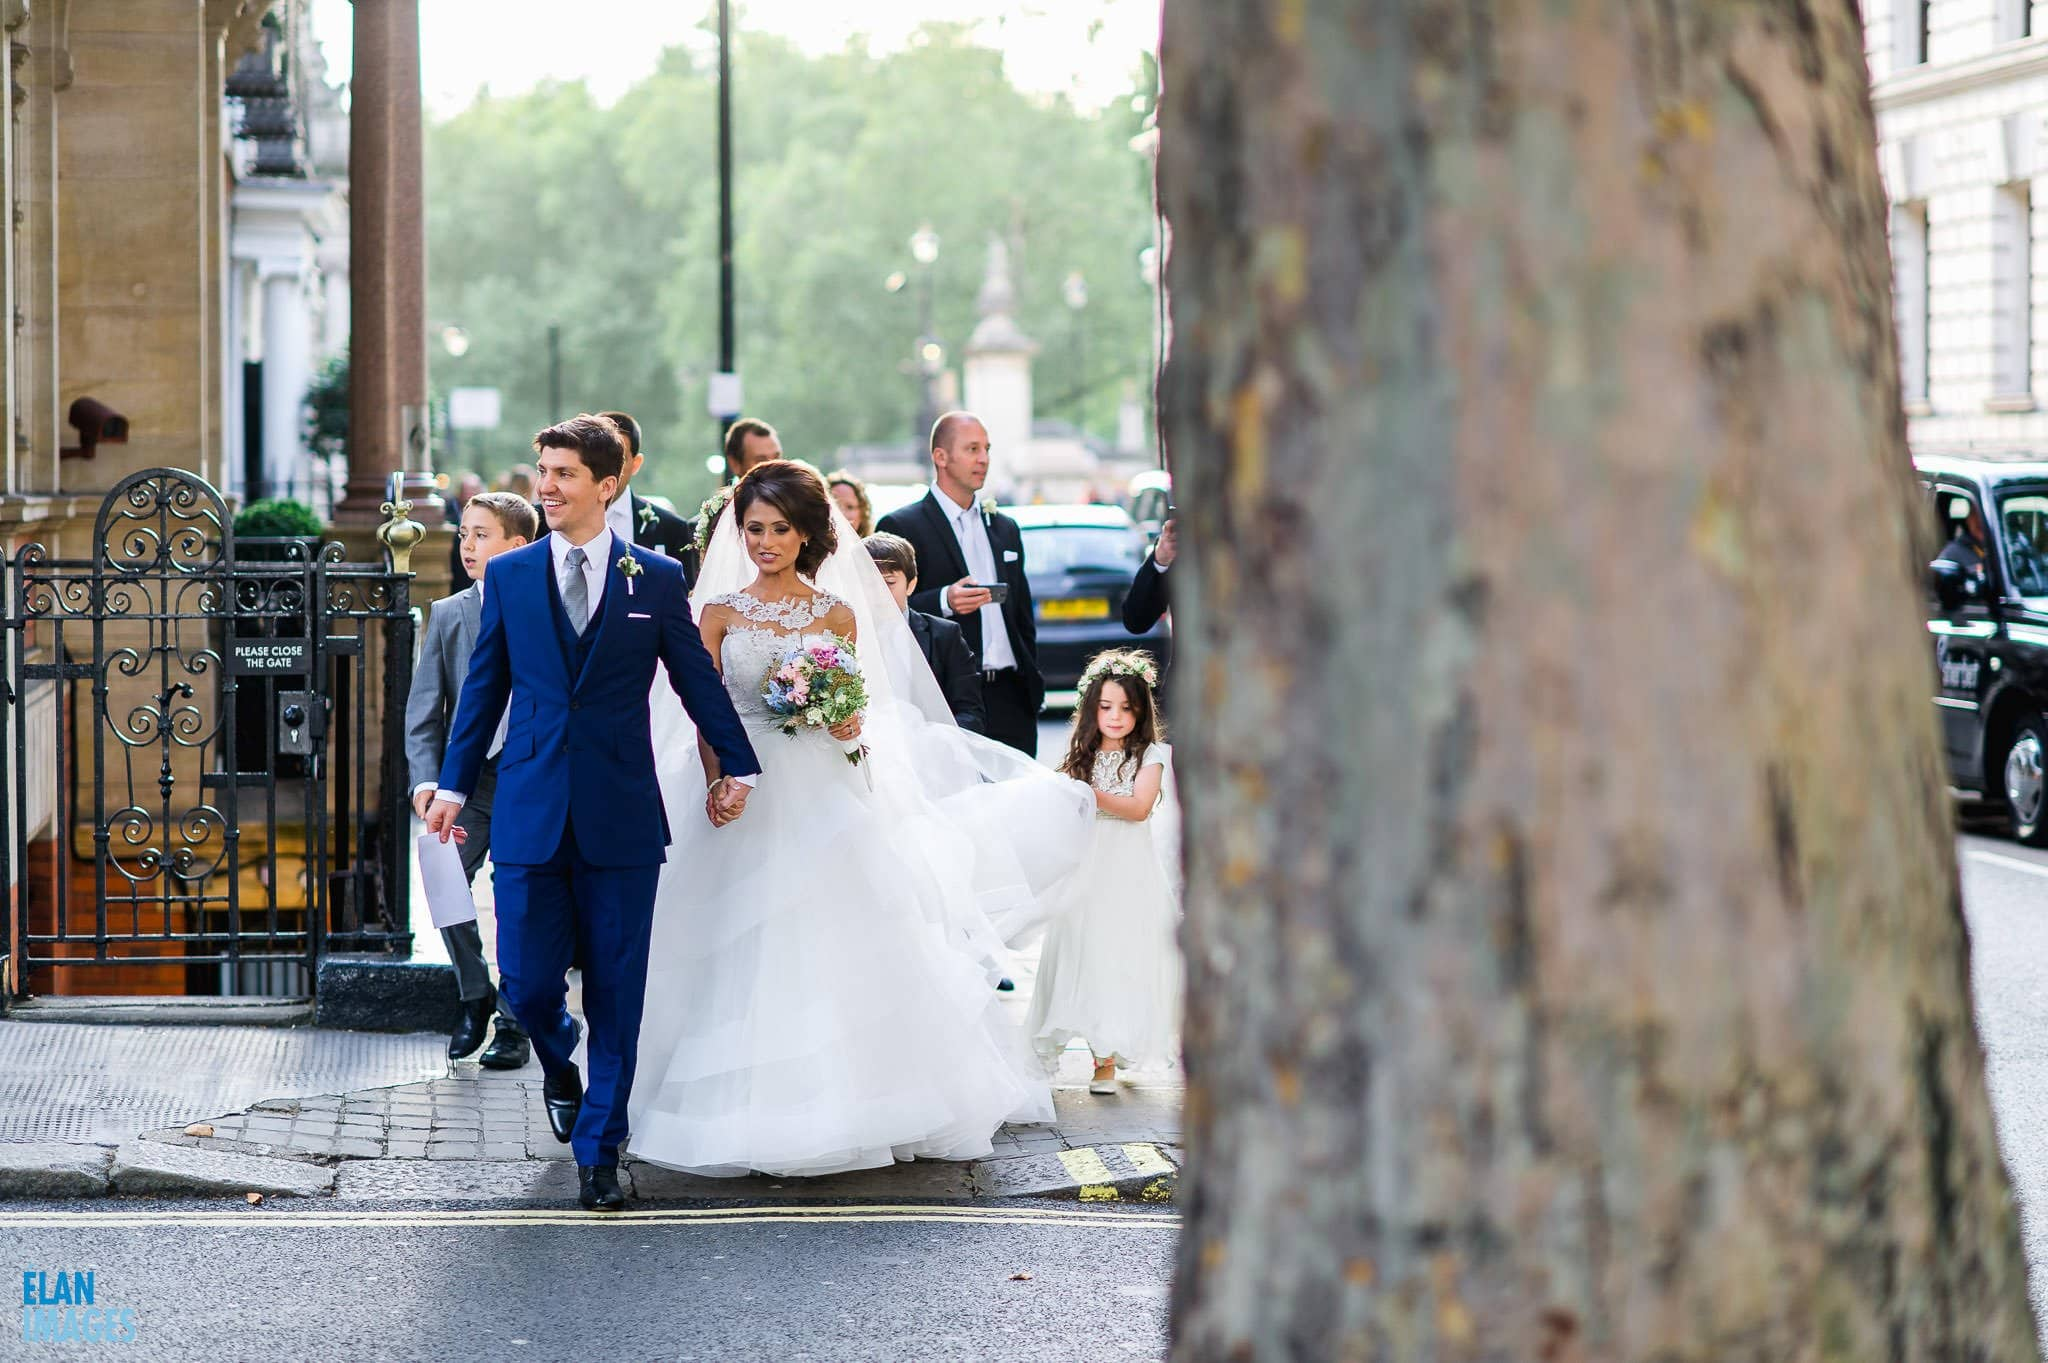 Wedding in Westminster – Fusion Wedding at One Great George Street 40